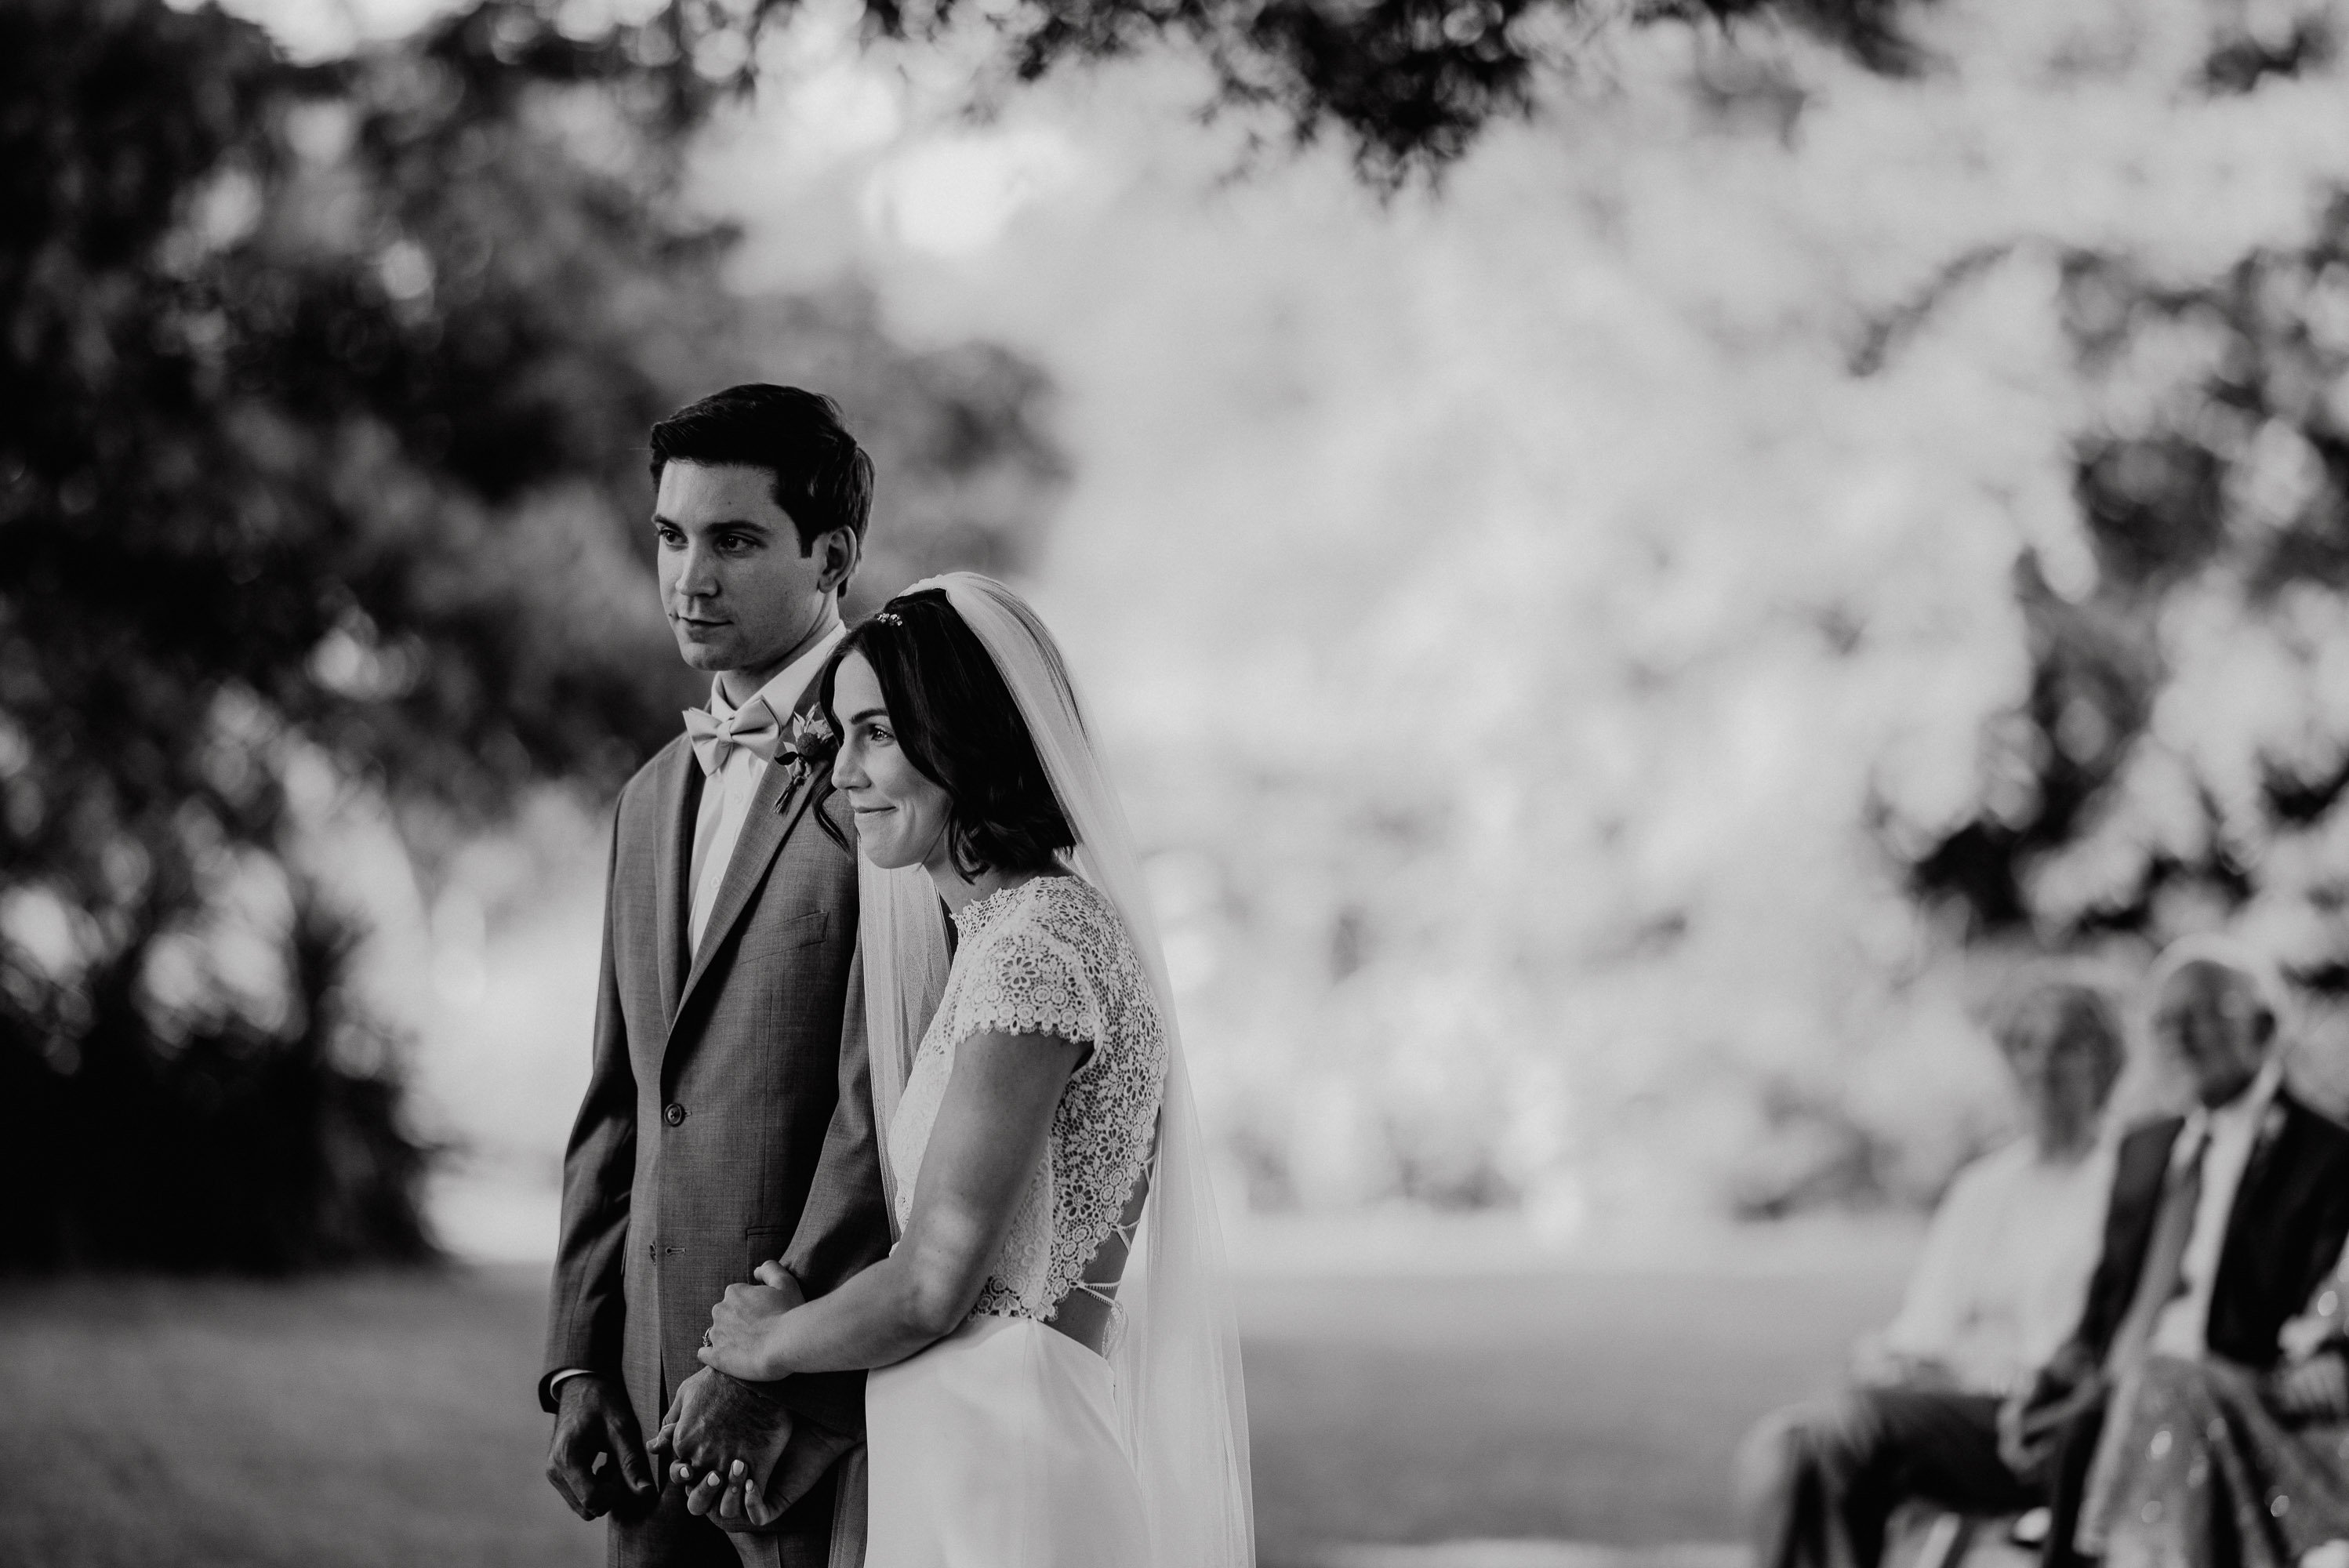 documentary wedding photography for creative and modern couples in austin texas